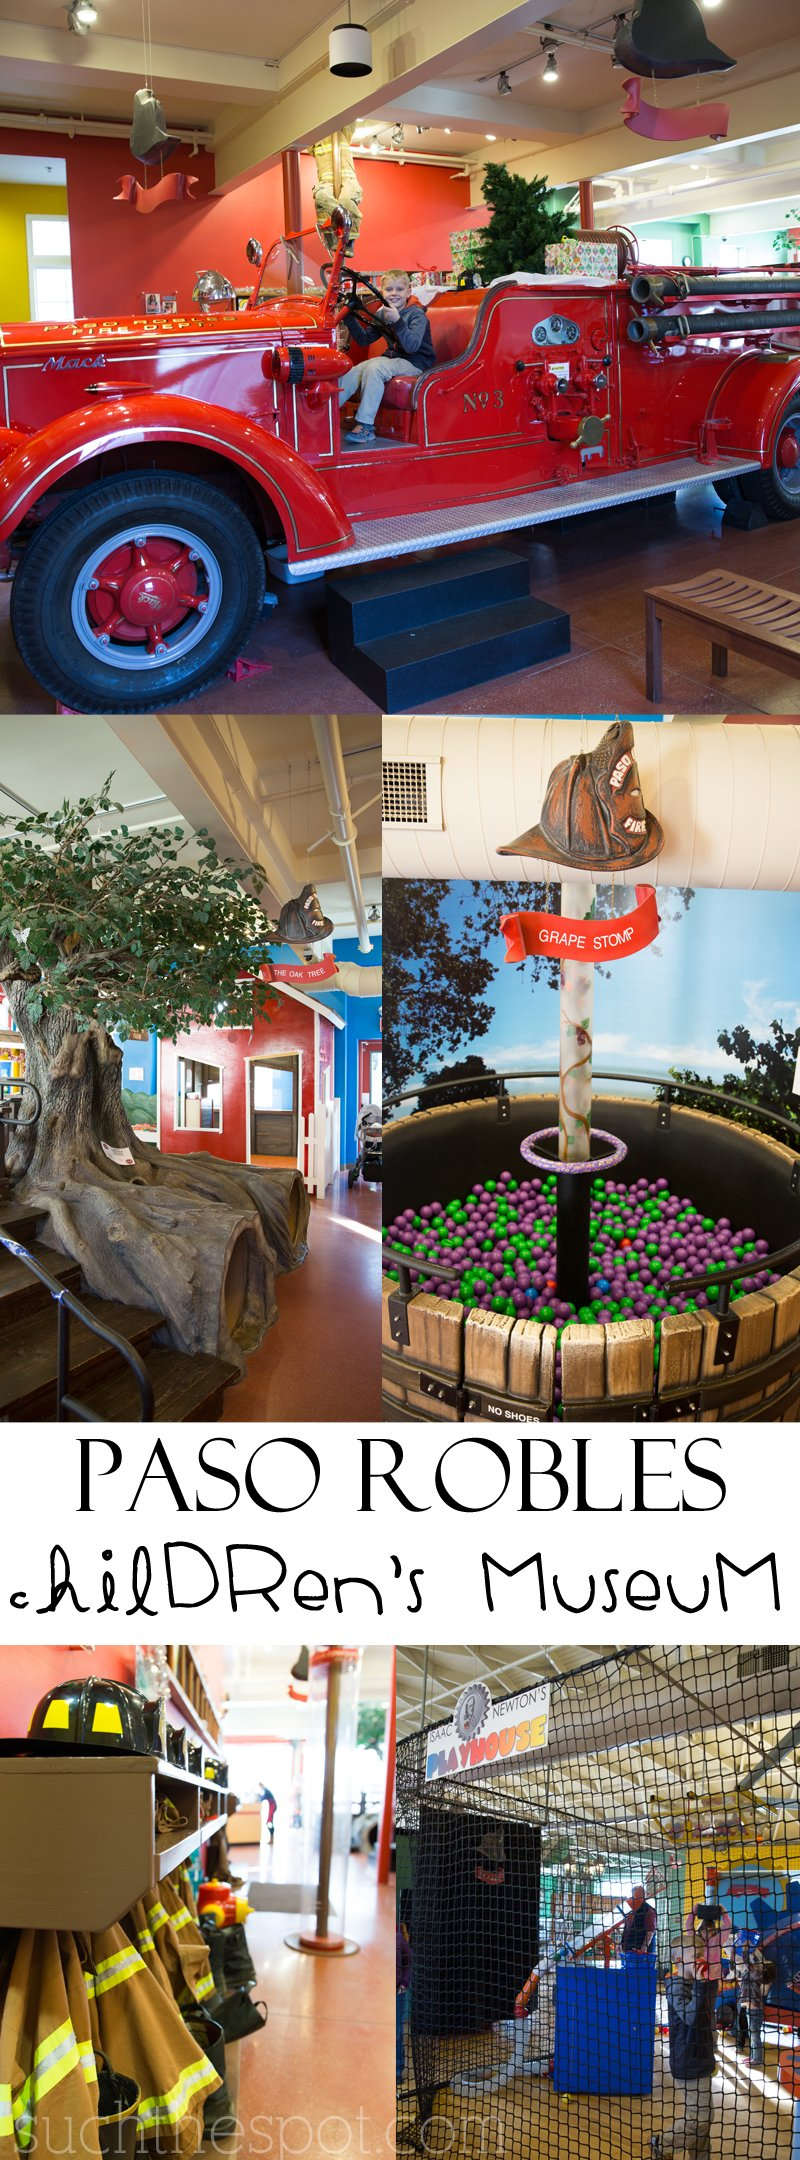 Paso Robles, California is the perfect weekend getaway destination. From wineries to restaurants, its charming downtown is a foodie paradise. This guide shares things to do during your stay.